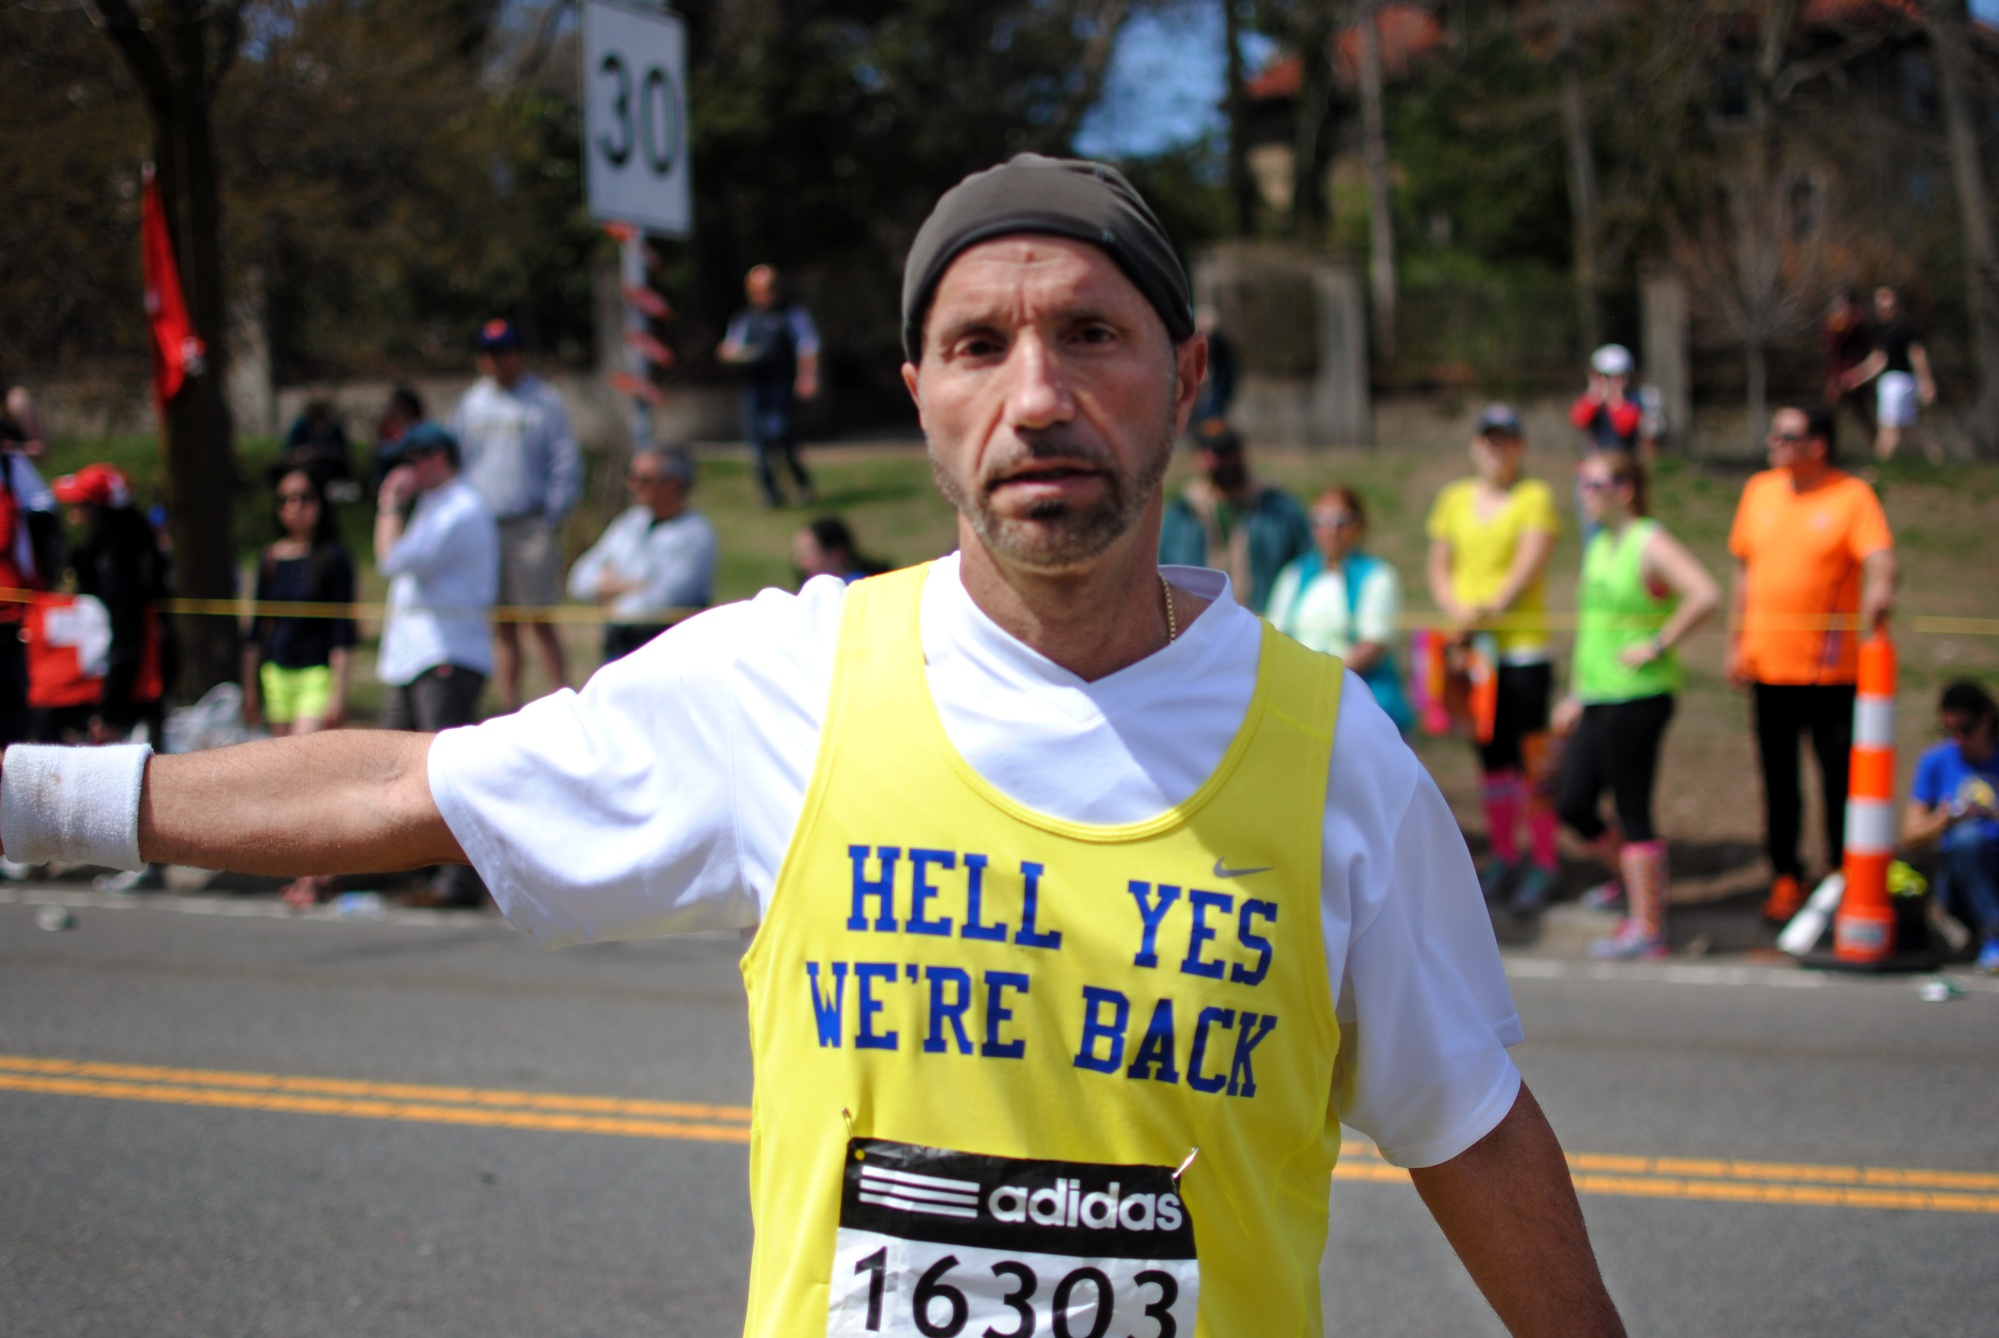 Joey Phillips of Cuyahoga Falls, USA pauses at mile 21 after reaching the summit of Heartbreak Hill at the 2014 Boston Marathon.